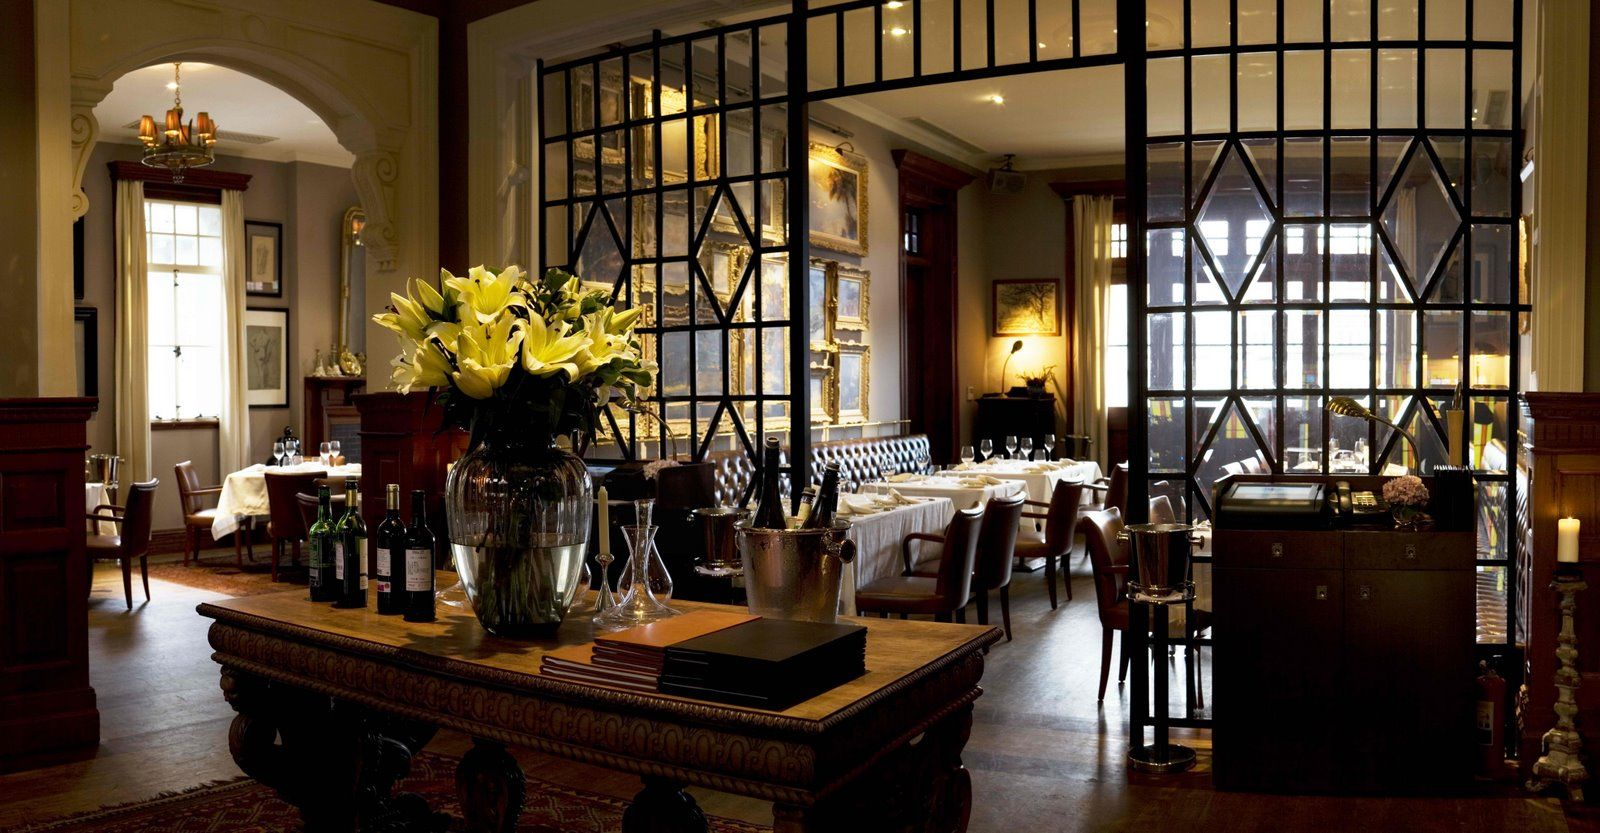 Chicago Restaurants With Private Dining Rooms Interesting Design Decoration